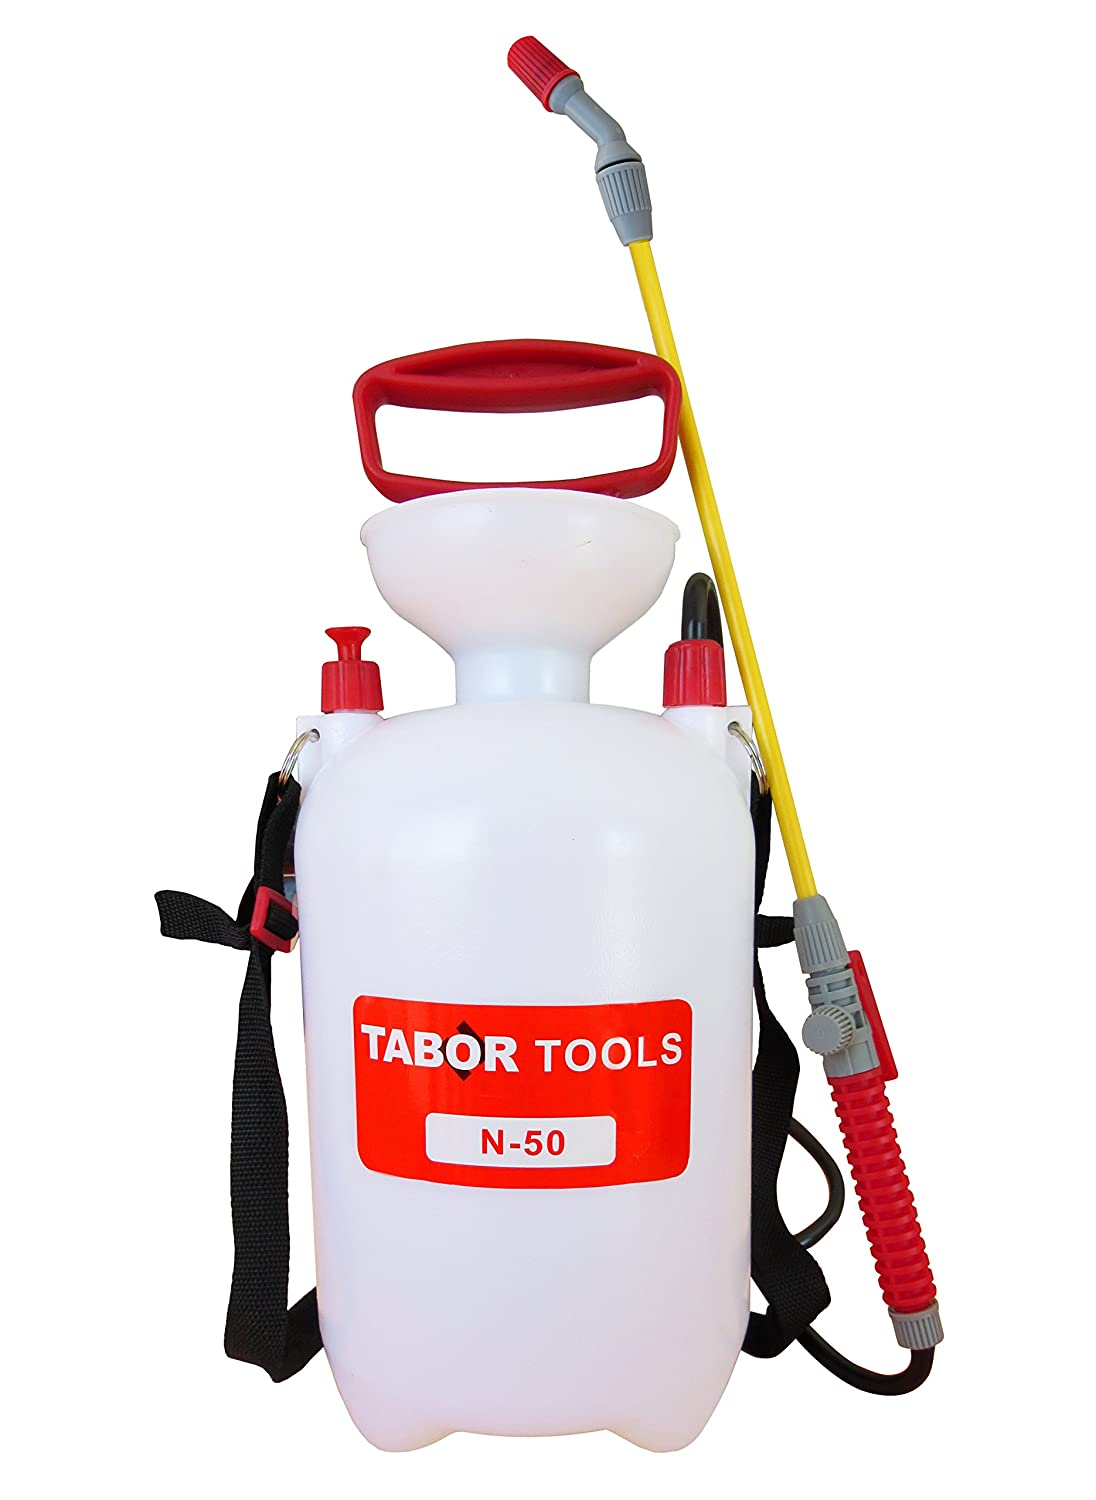 Tabor Tools Lawn and Garden Pump